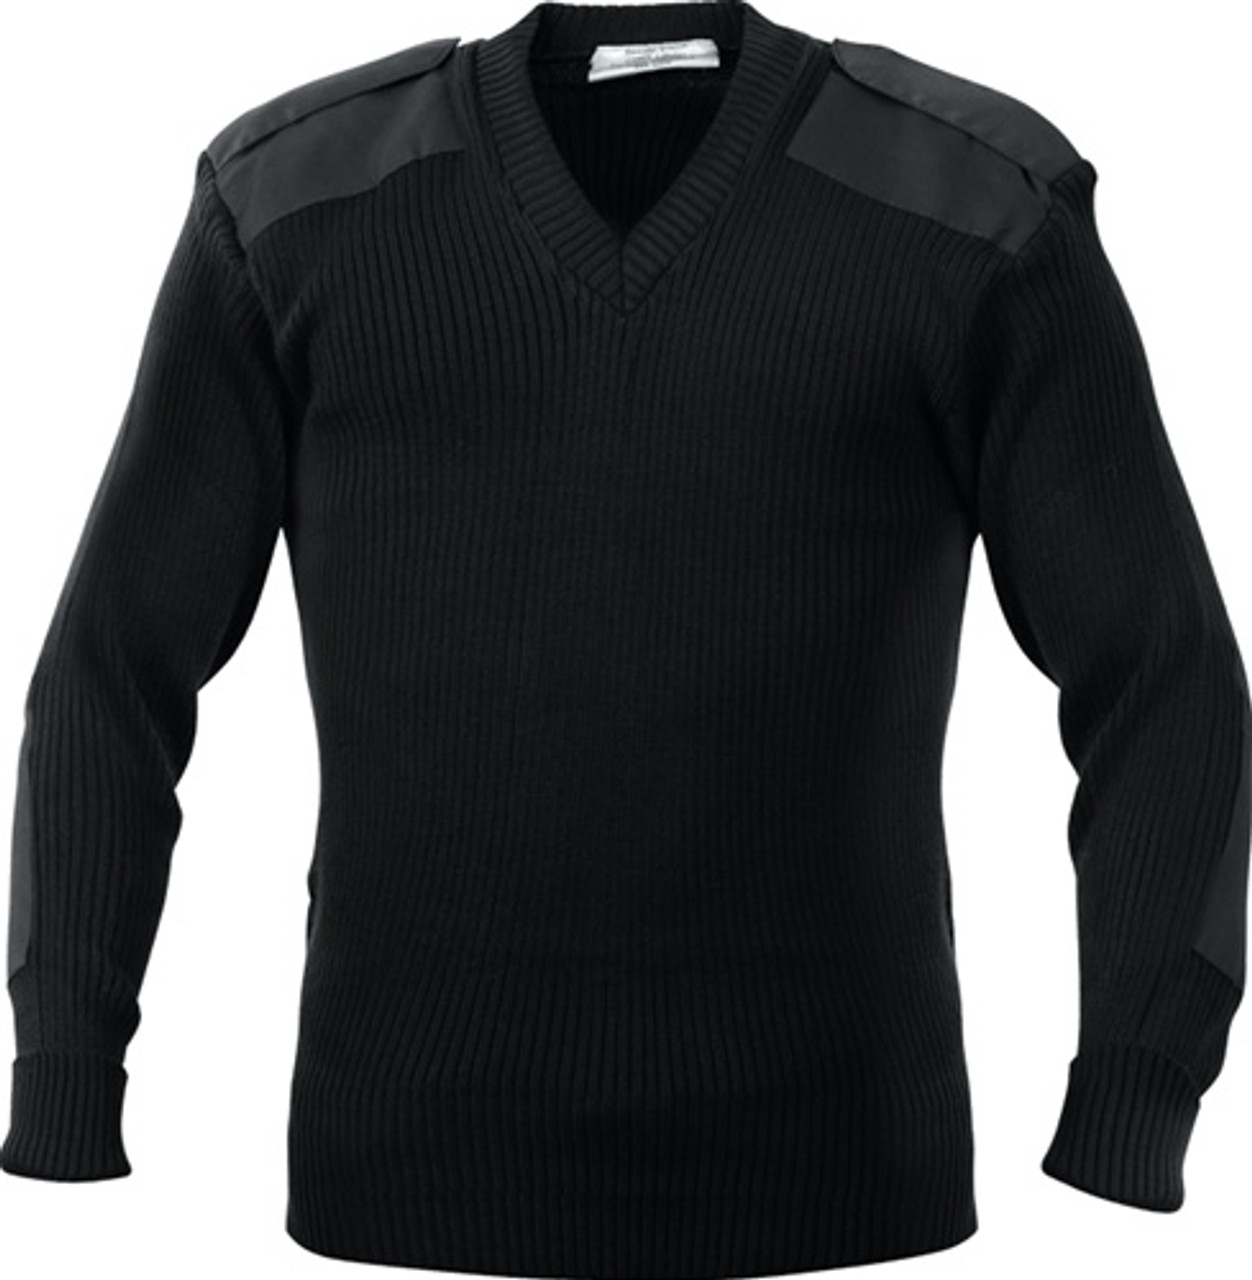 ACRYLIC V-NECK SWEATER - BLACK from Hessen Tactical